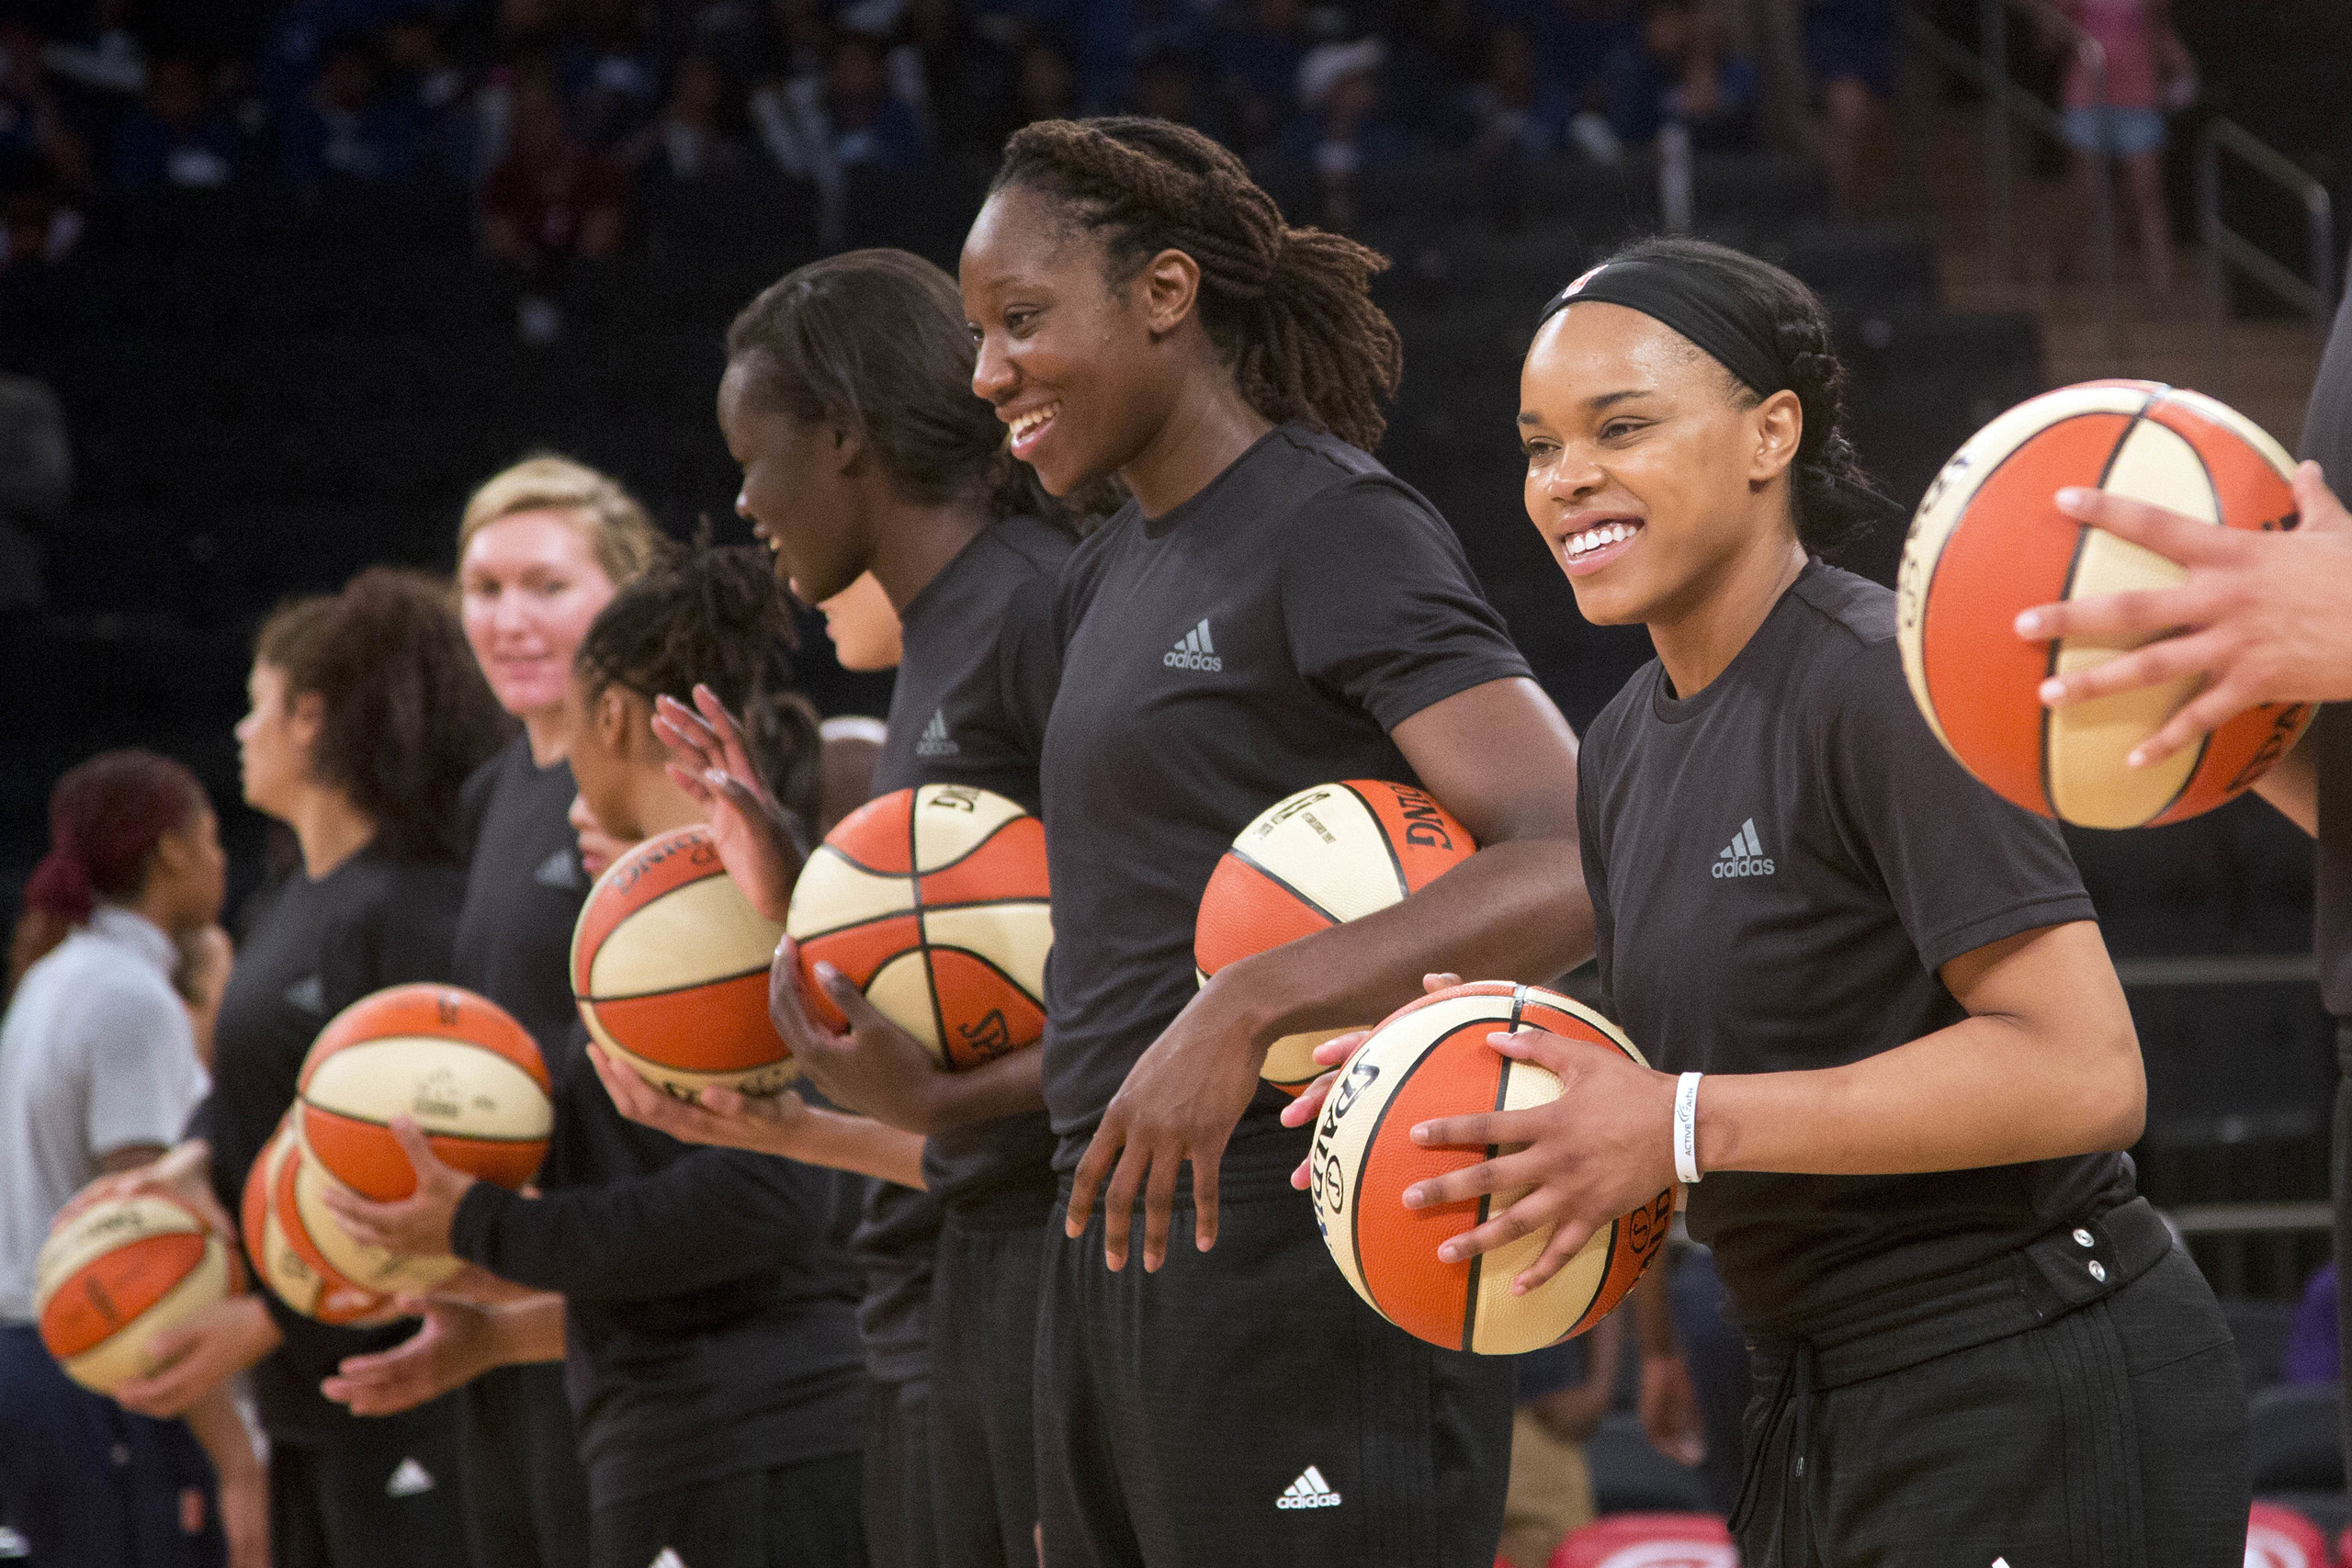 Members of the New York Liberty basketball team await the start of a game against the Atlanta Dream in New York City on July 13, 2016.